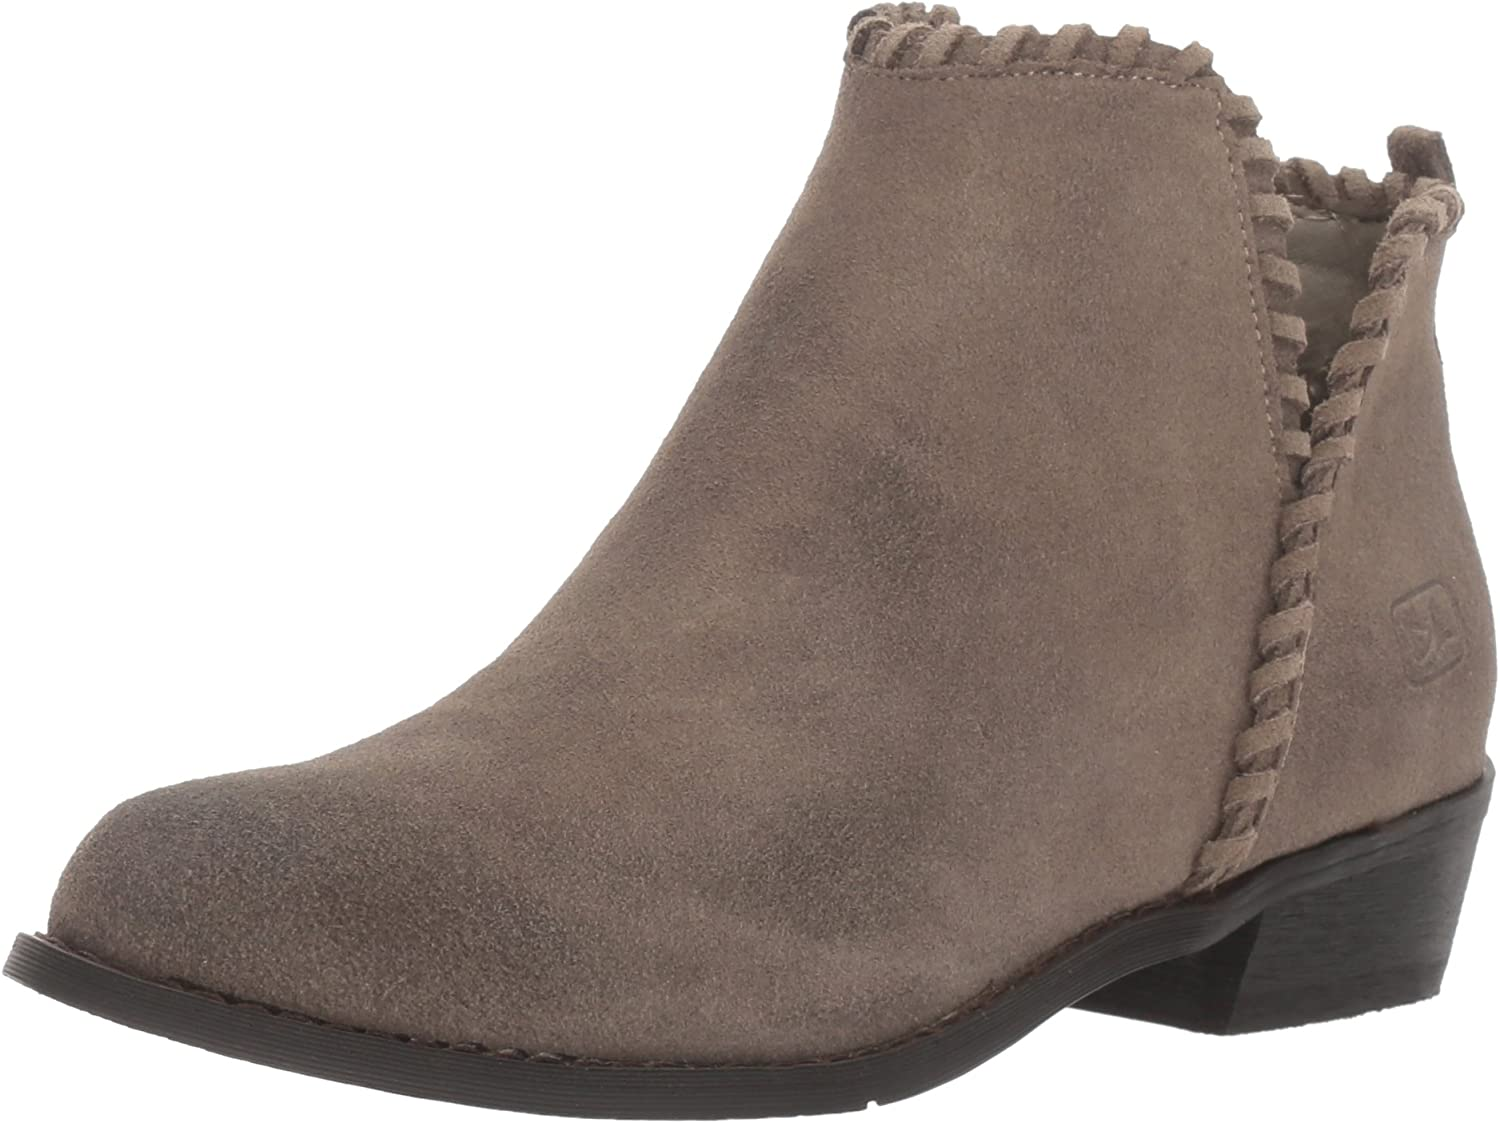 Dirty Laundry by Chinese Laundry Women's Crossroads Ankle Bootie